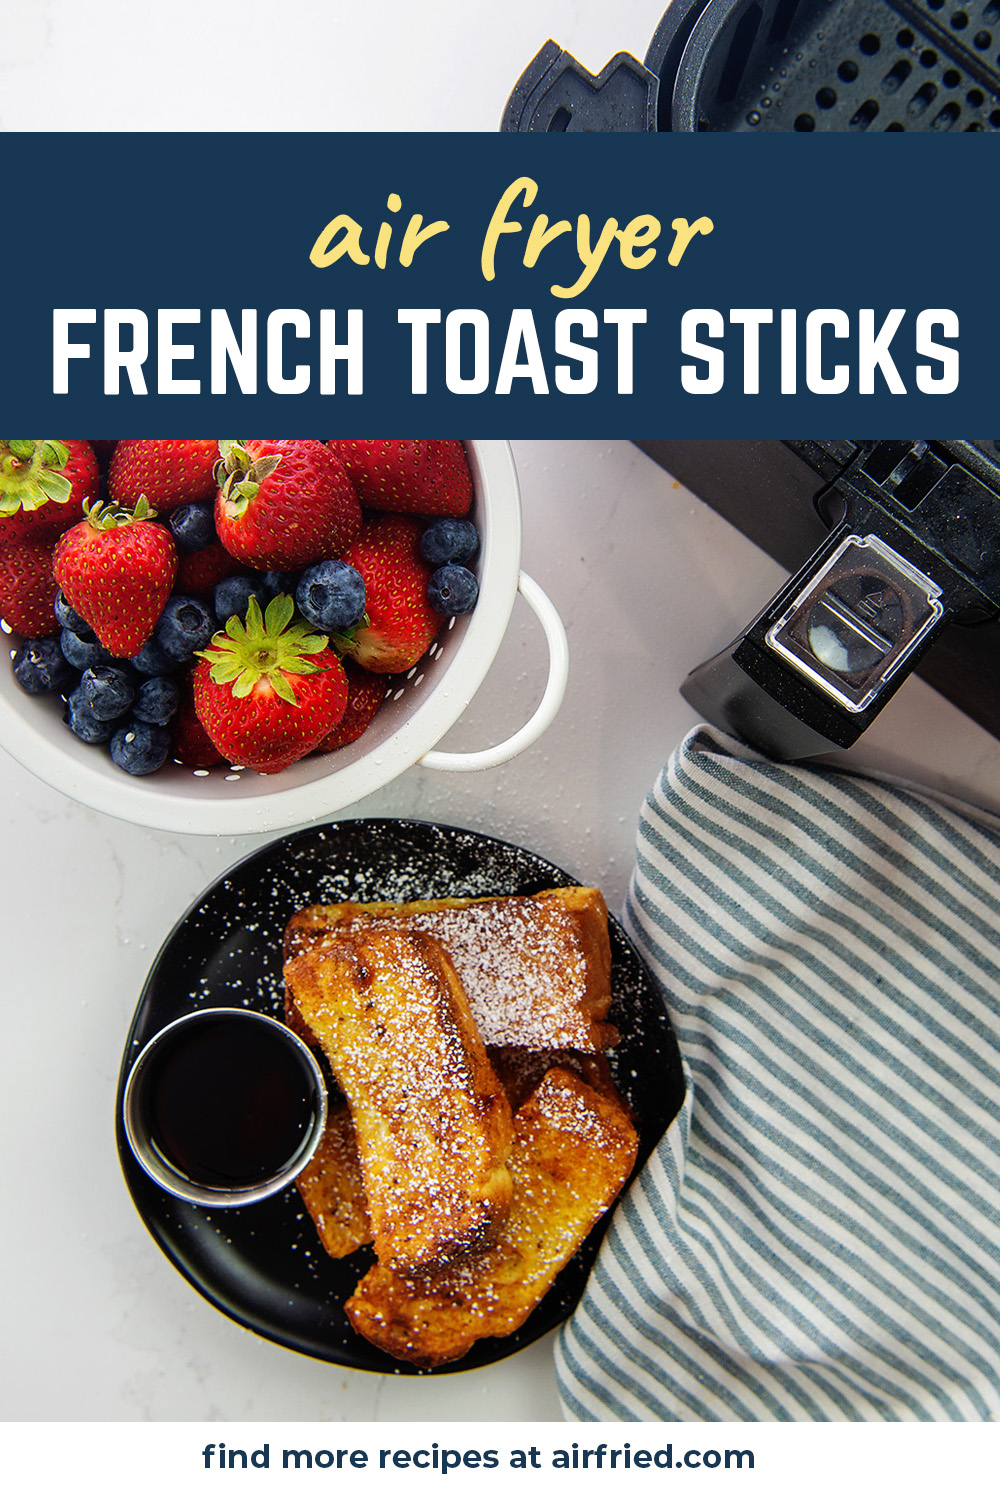 Our air fried French toast sticks have a great texture and were really easy to make!